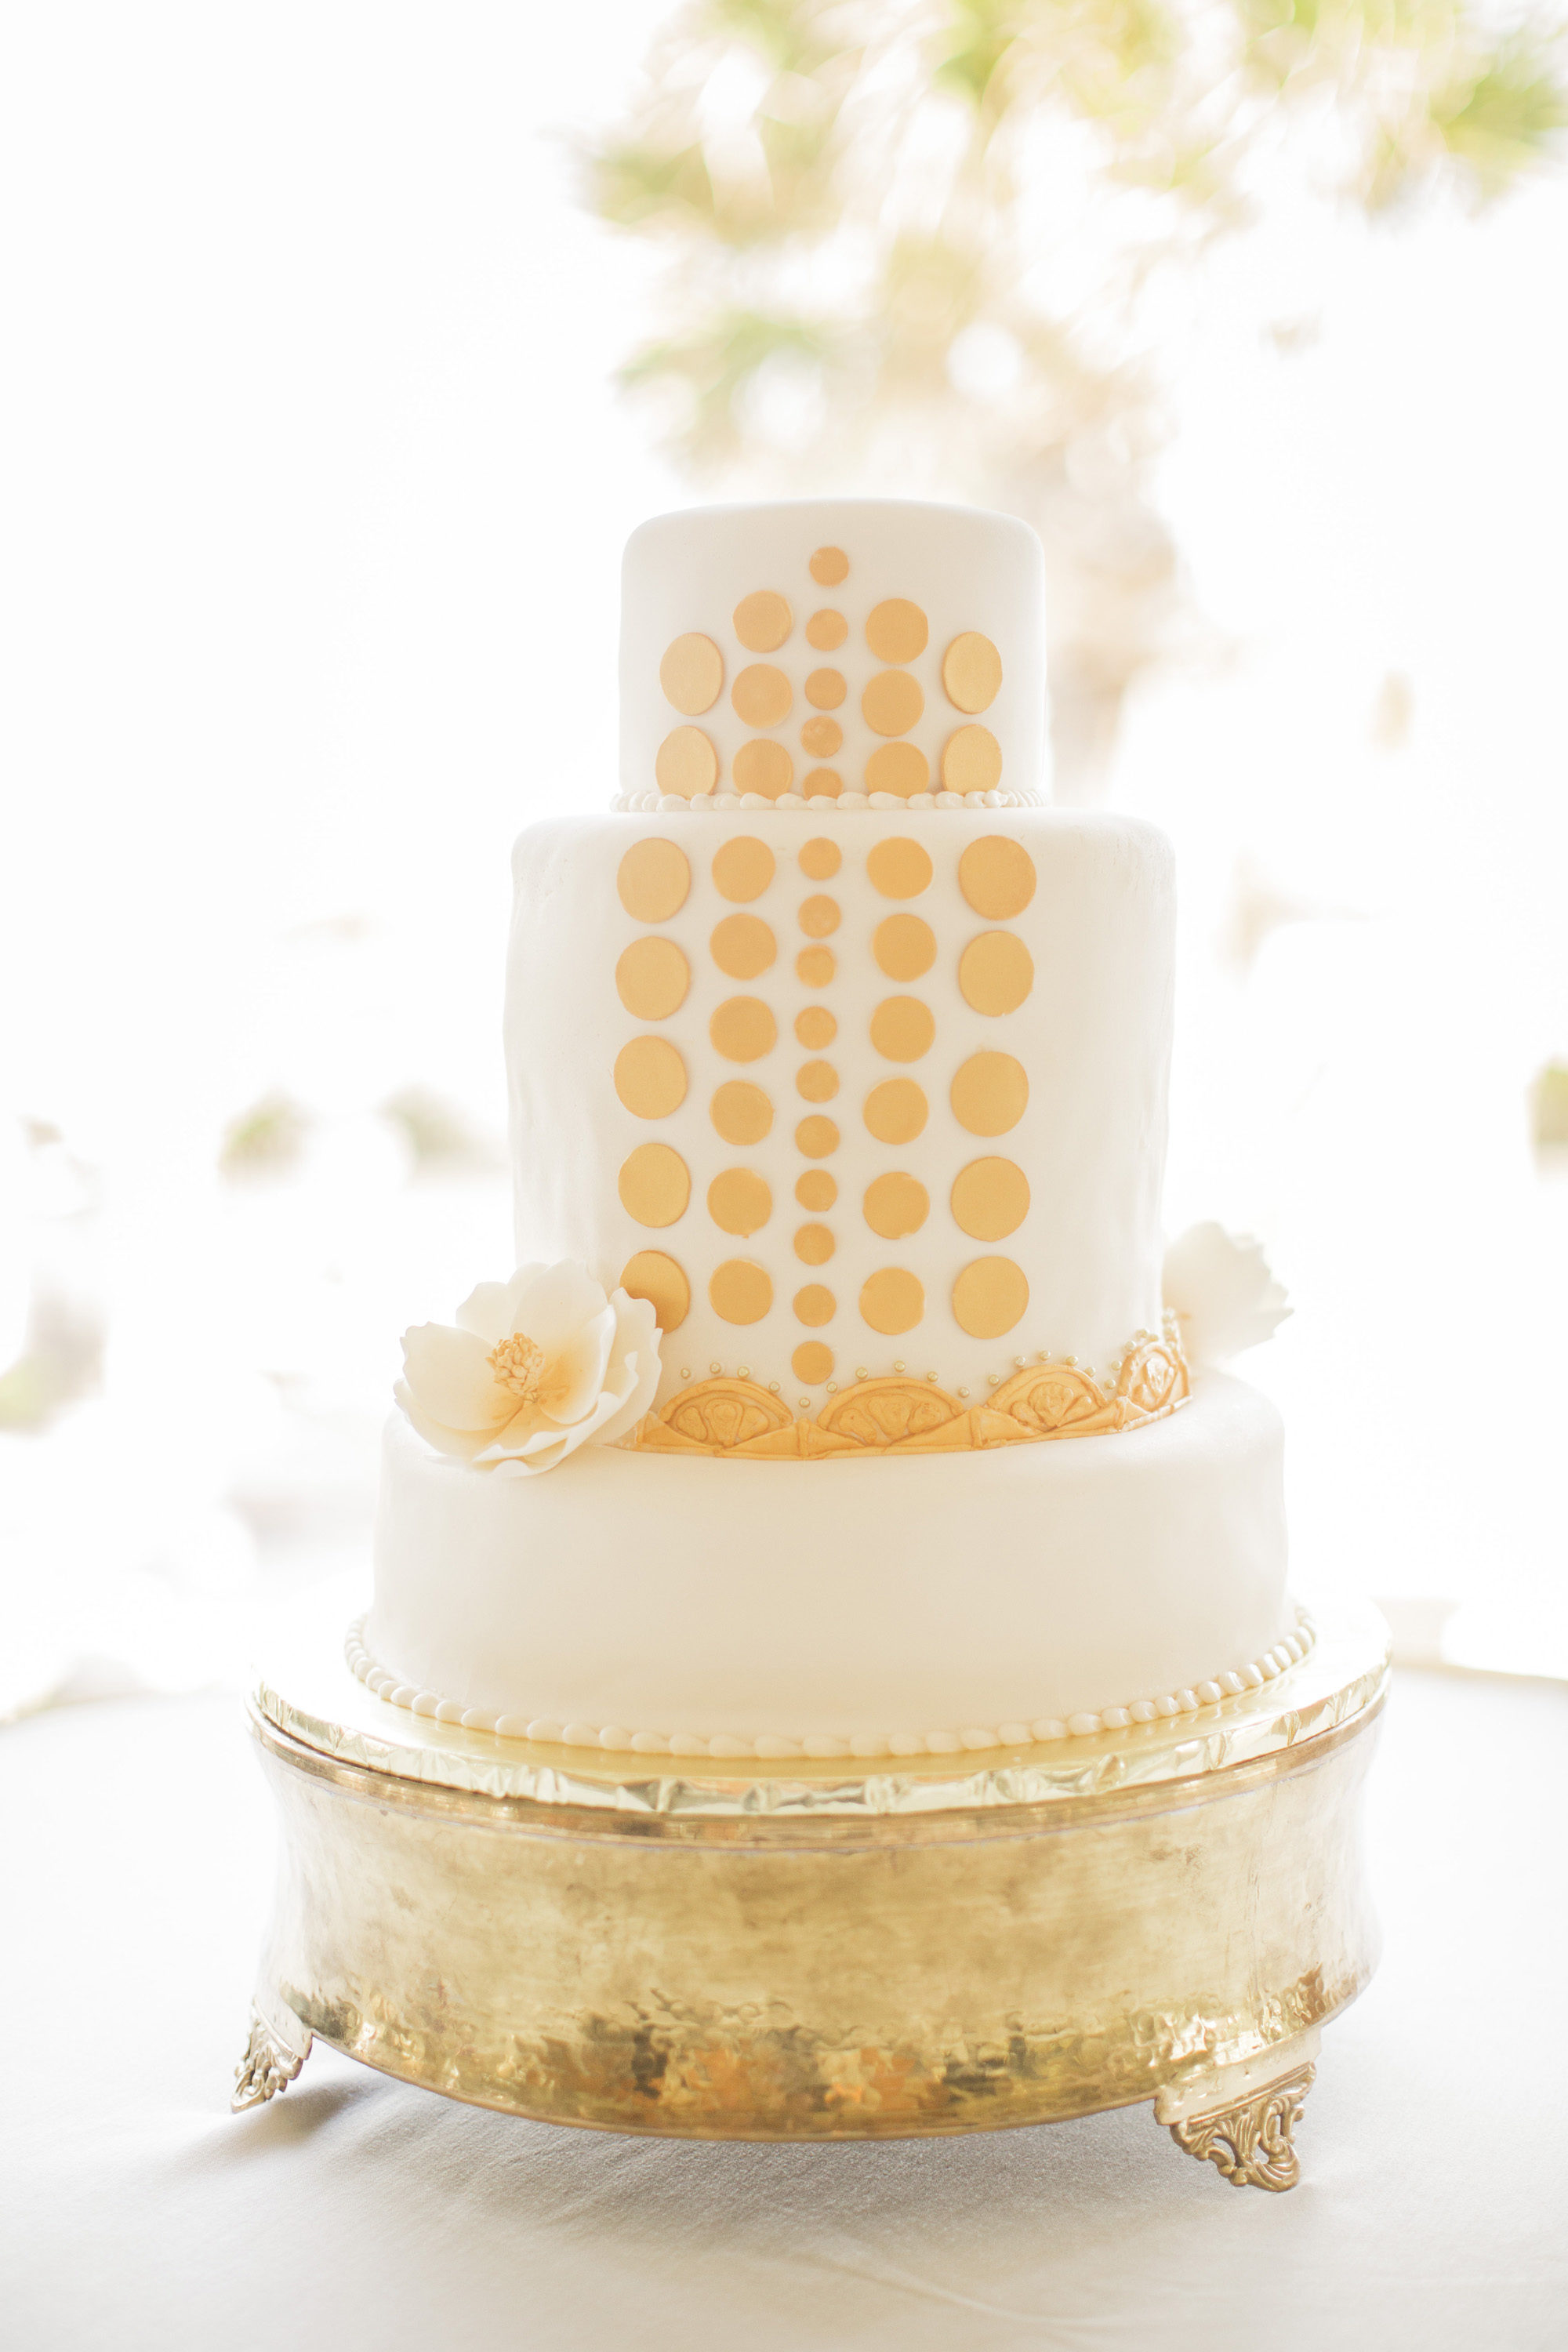 Great Gatsby Inspired Galveston Wedding from Mustard Seed graphy